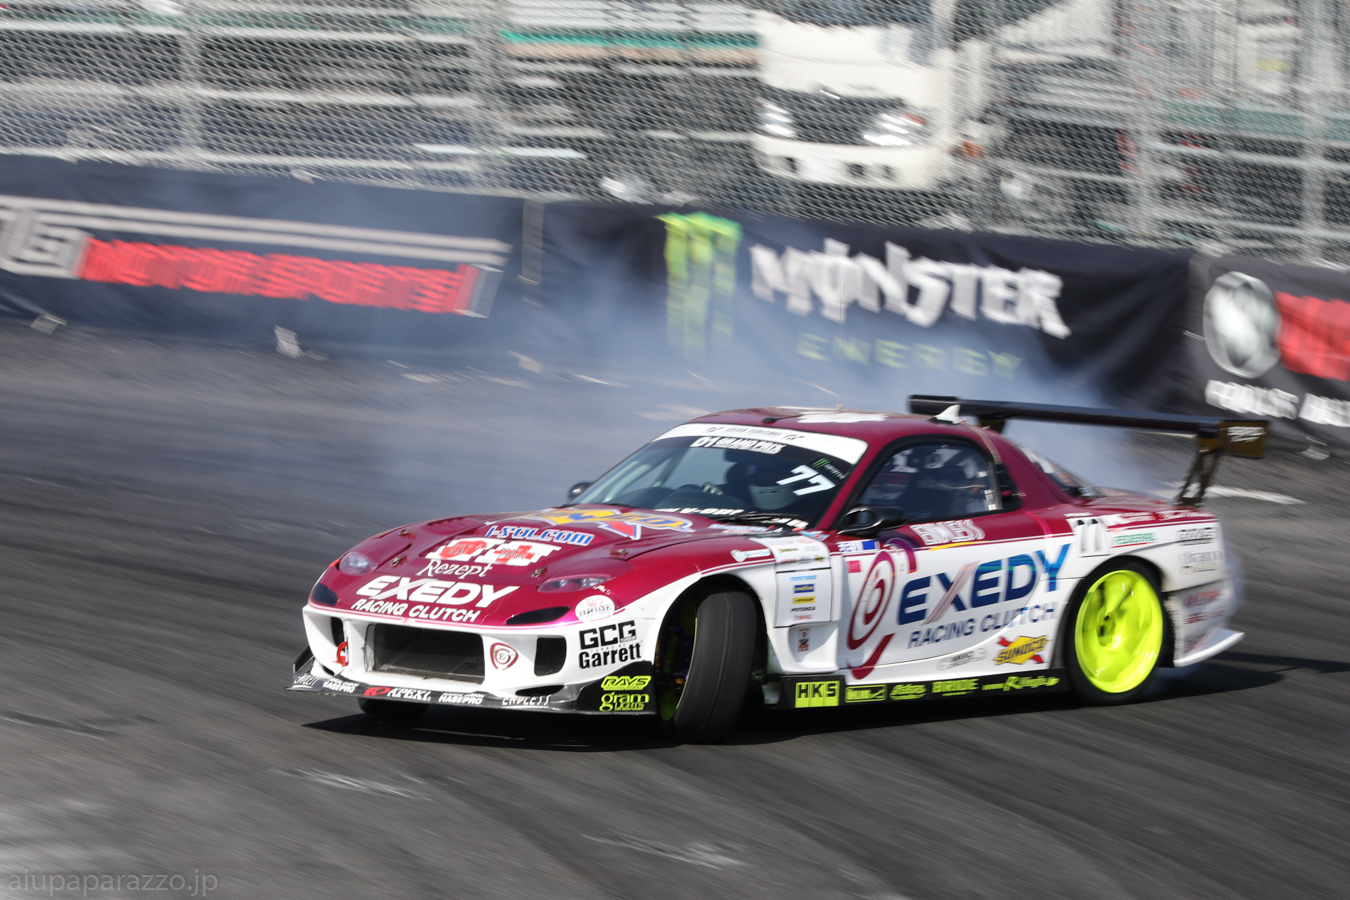 d1gp_tan2016lap3-32.jpg